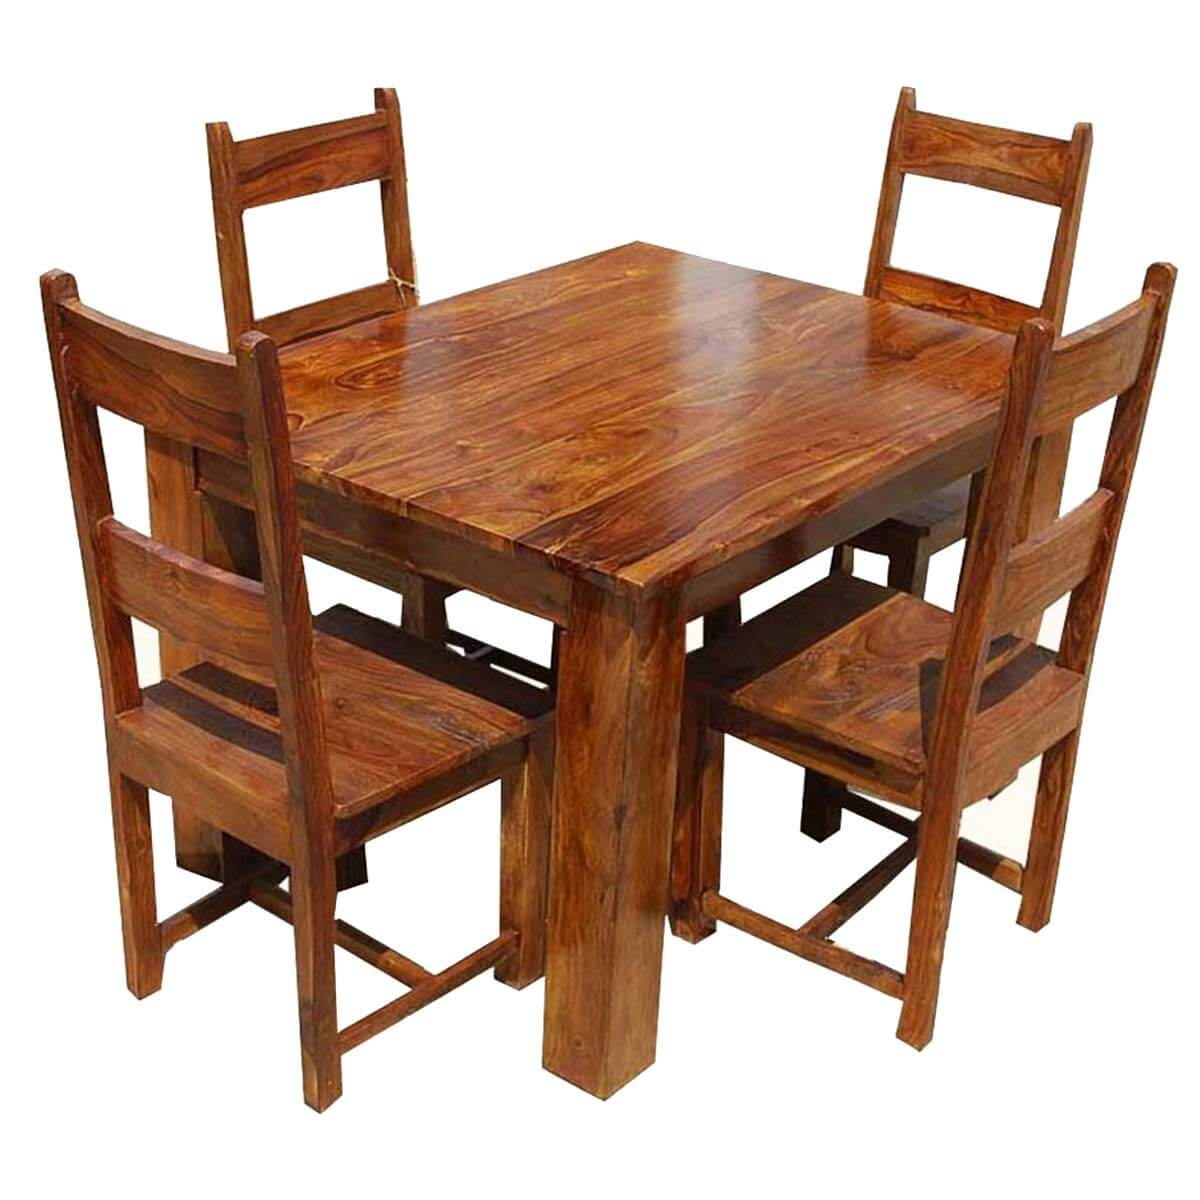 Rustic mission santa cruz solid wood dining room set for 4 for Breakfast sets furniture